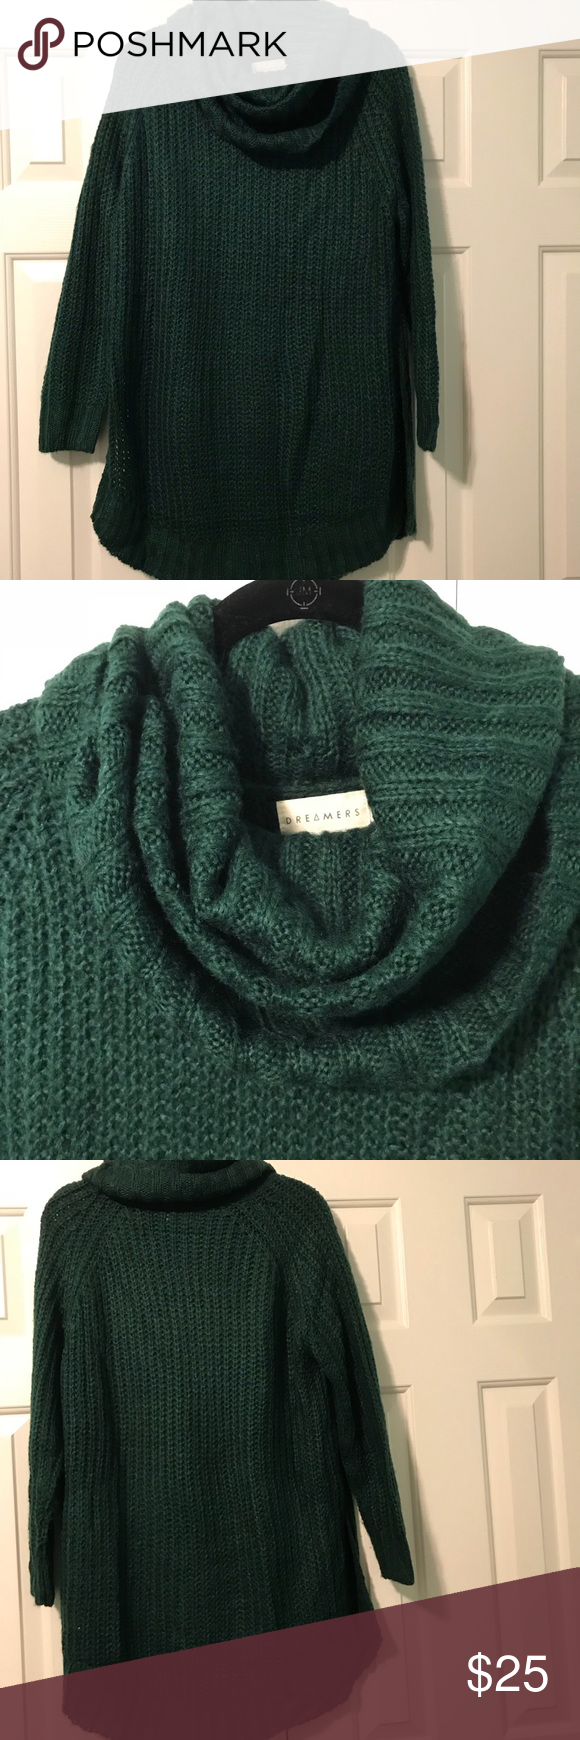 Hunter Green Dreamers cowl neck sweater tunic Purchased from Nordstrom, worn only once to a Christmas party. This oversized sweater tunic is perfect with faux leather leggings or skinny jeans! Size small but oversized. 55% cotton 45% acrylic. Perfect hunter green color. Sweaters Cowl & Turtlenecks